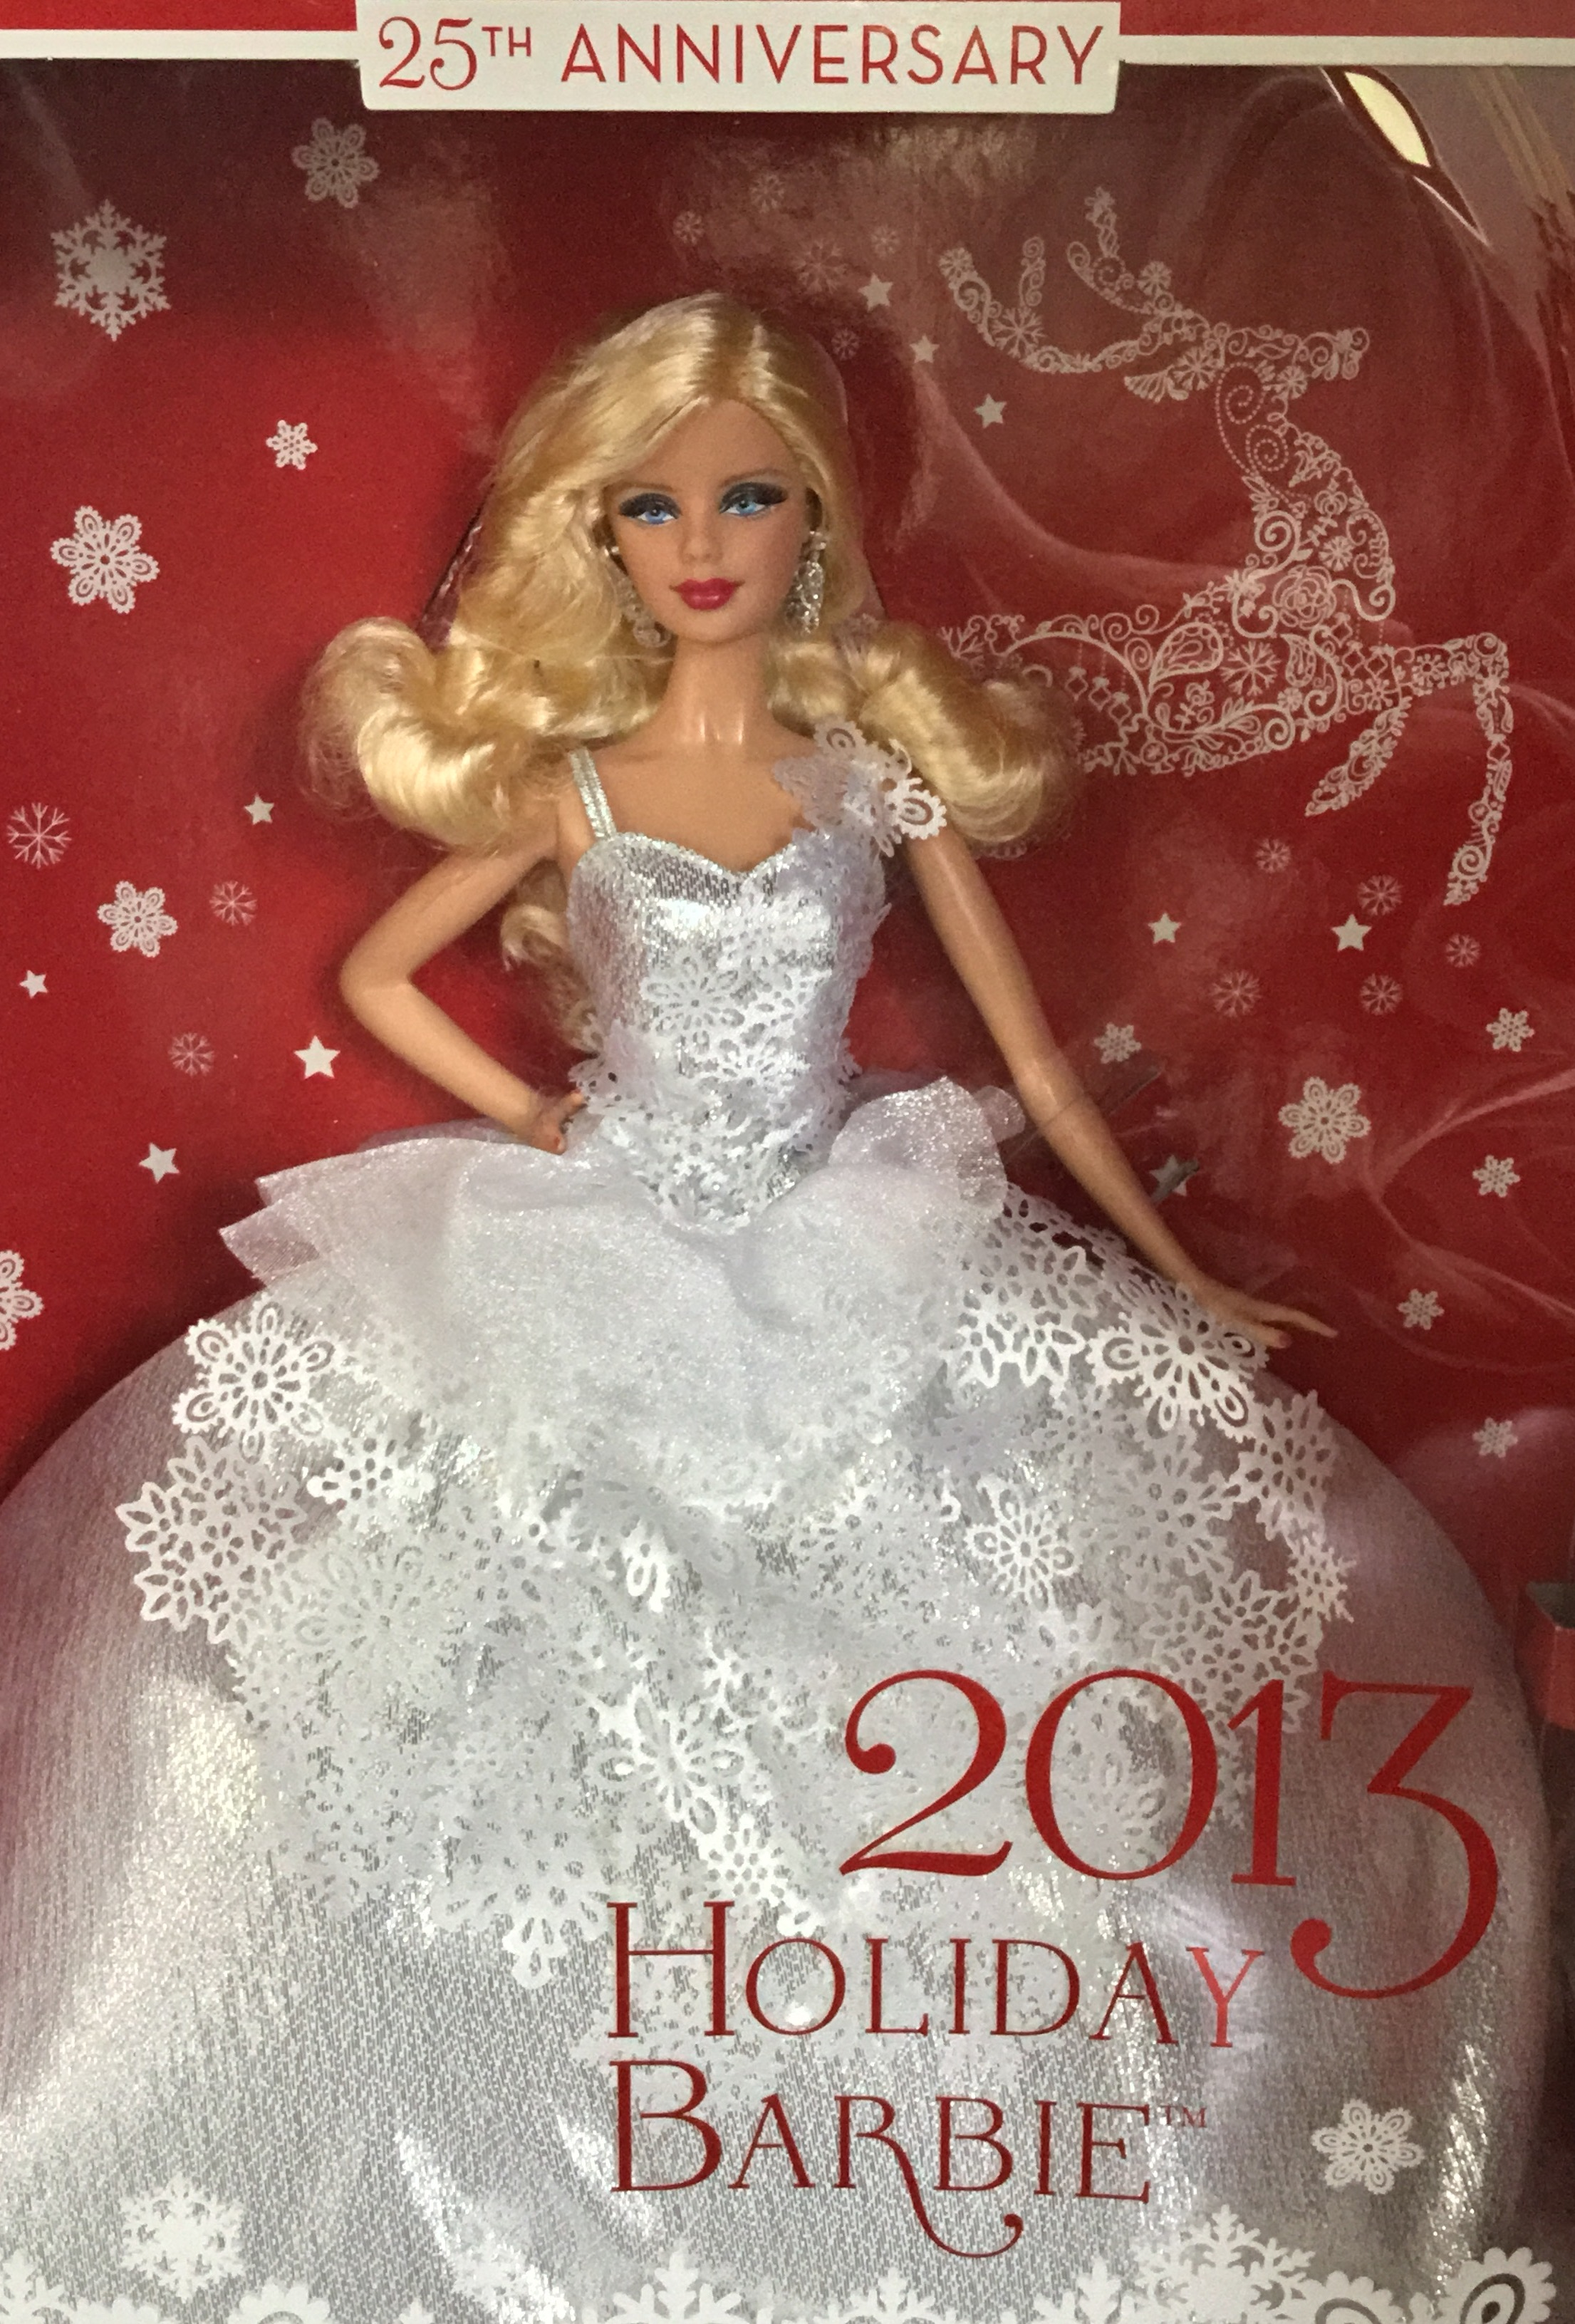 2013 Holiday Barbie